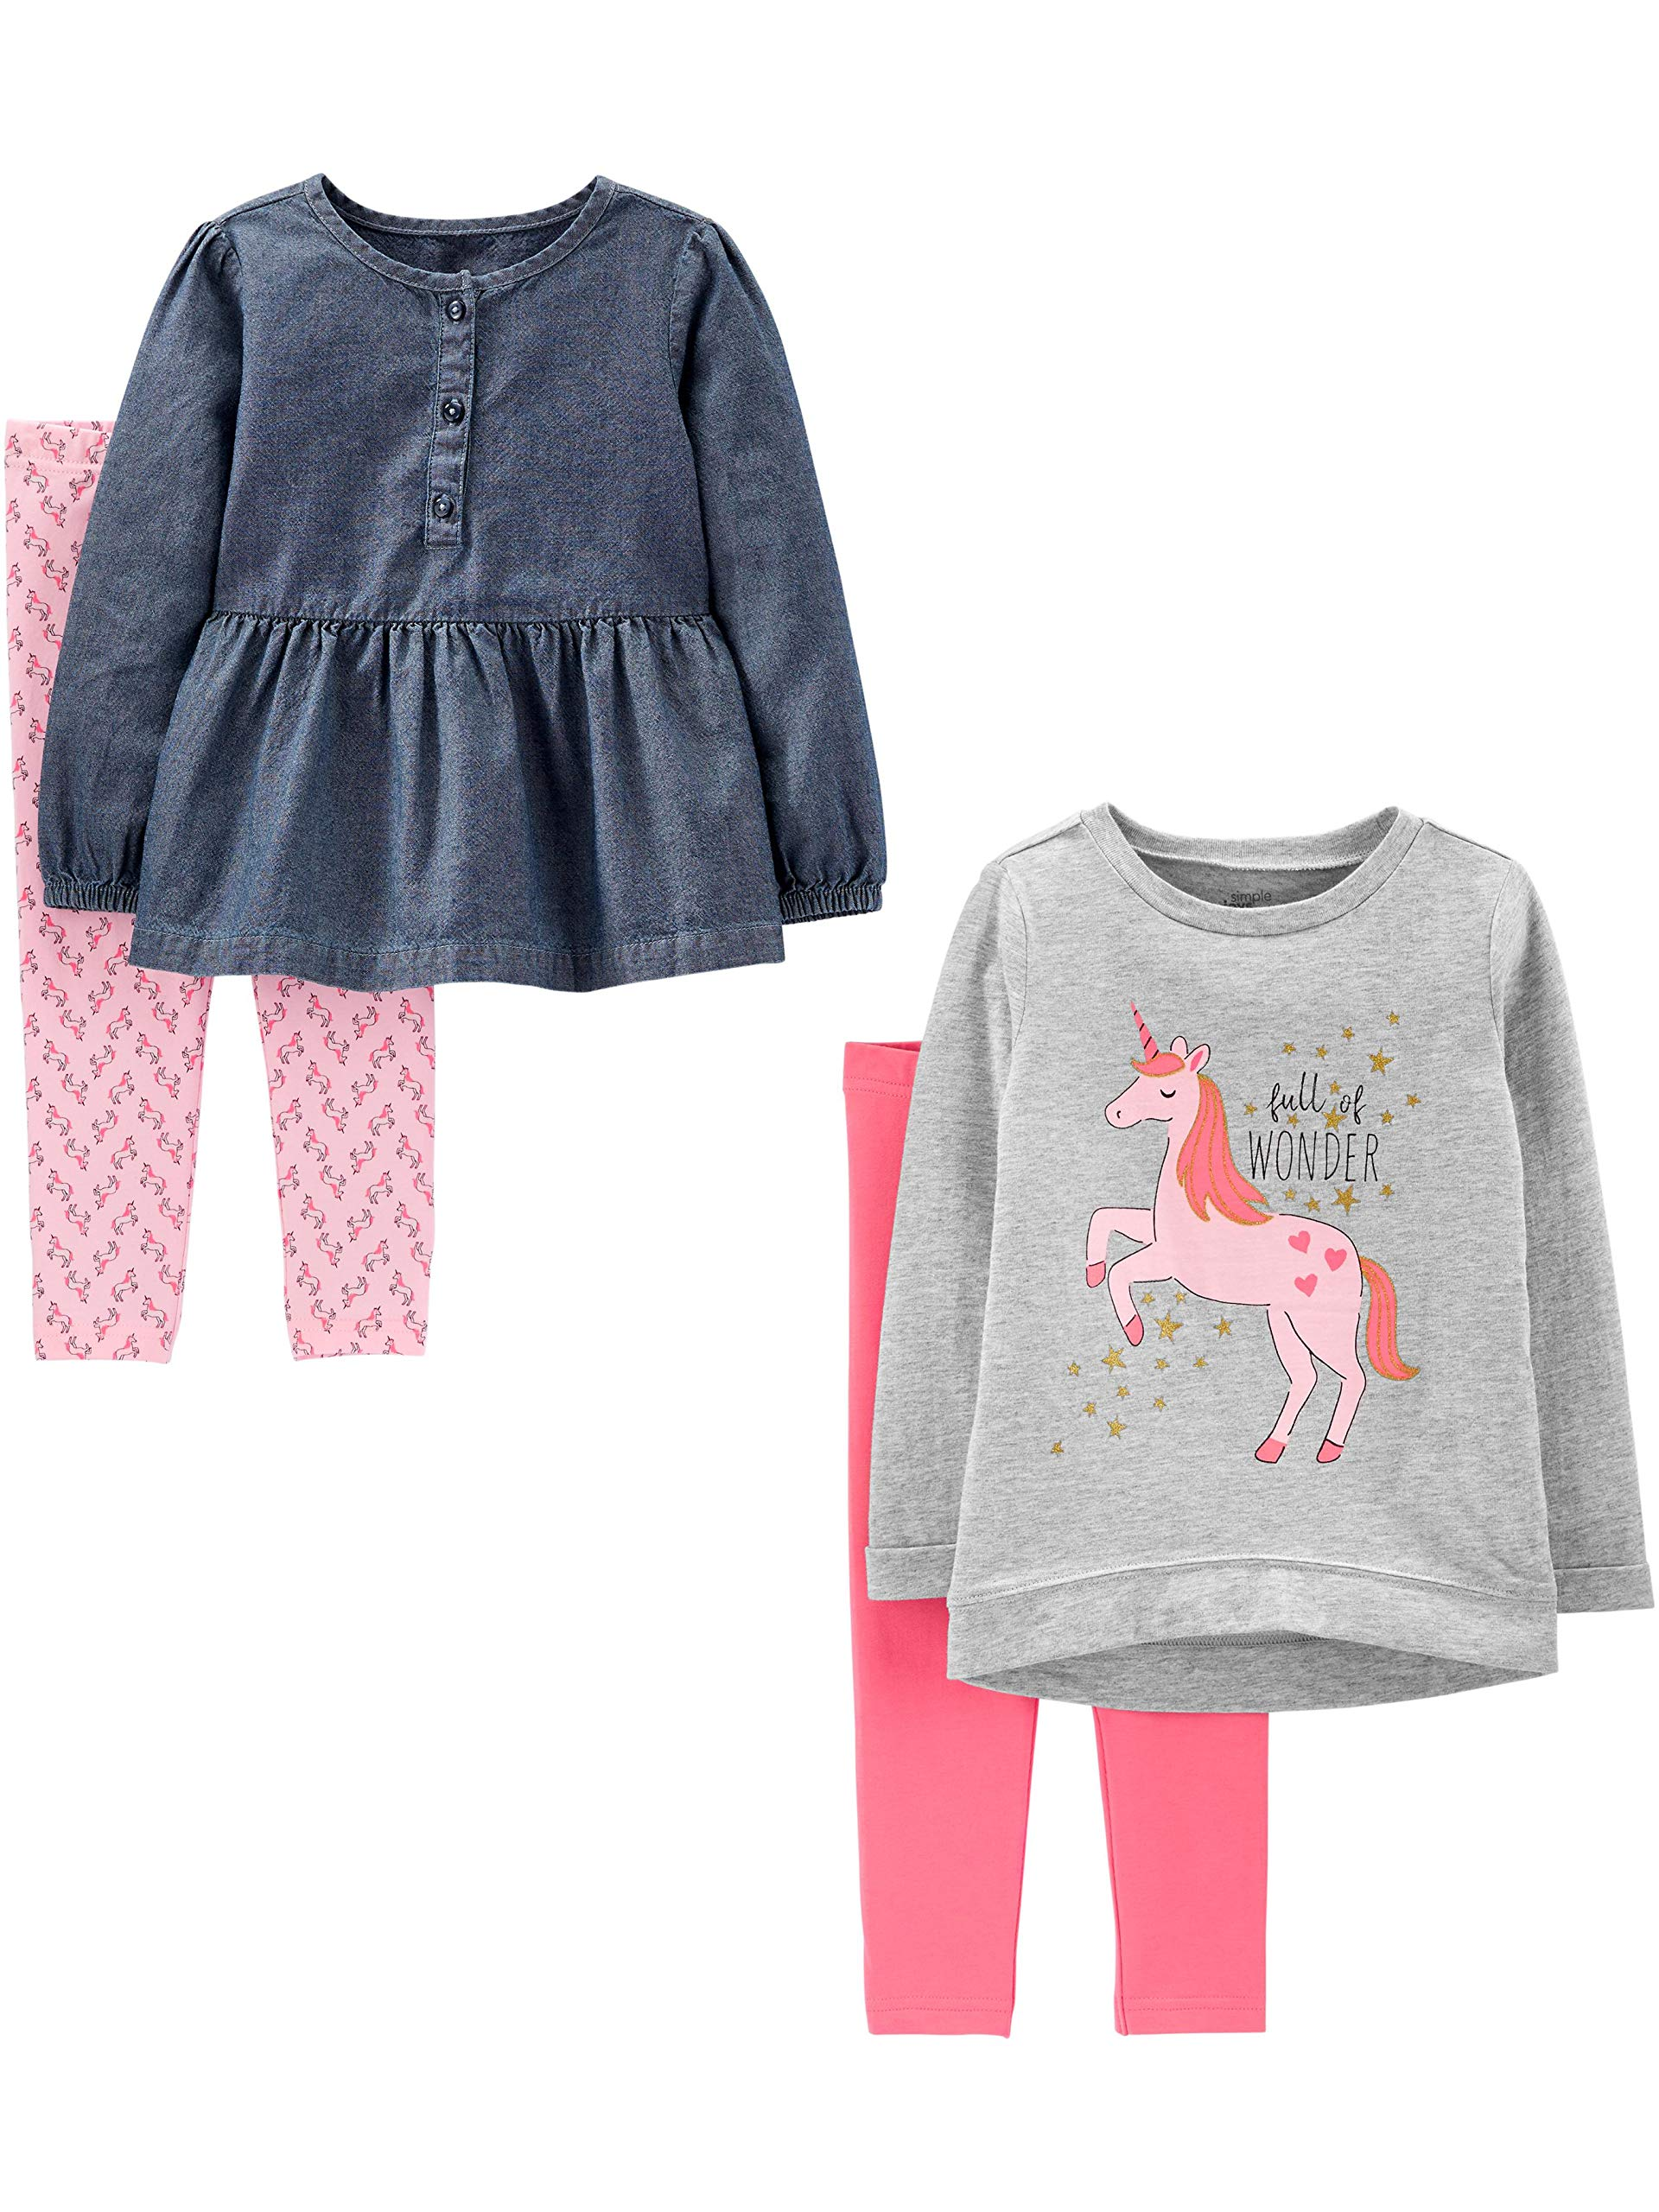 Simple Joys by Carters Girls 4-Piece Long-Sleeve Shirts and Pants Playwear Set